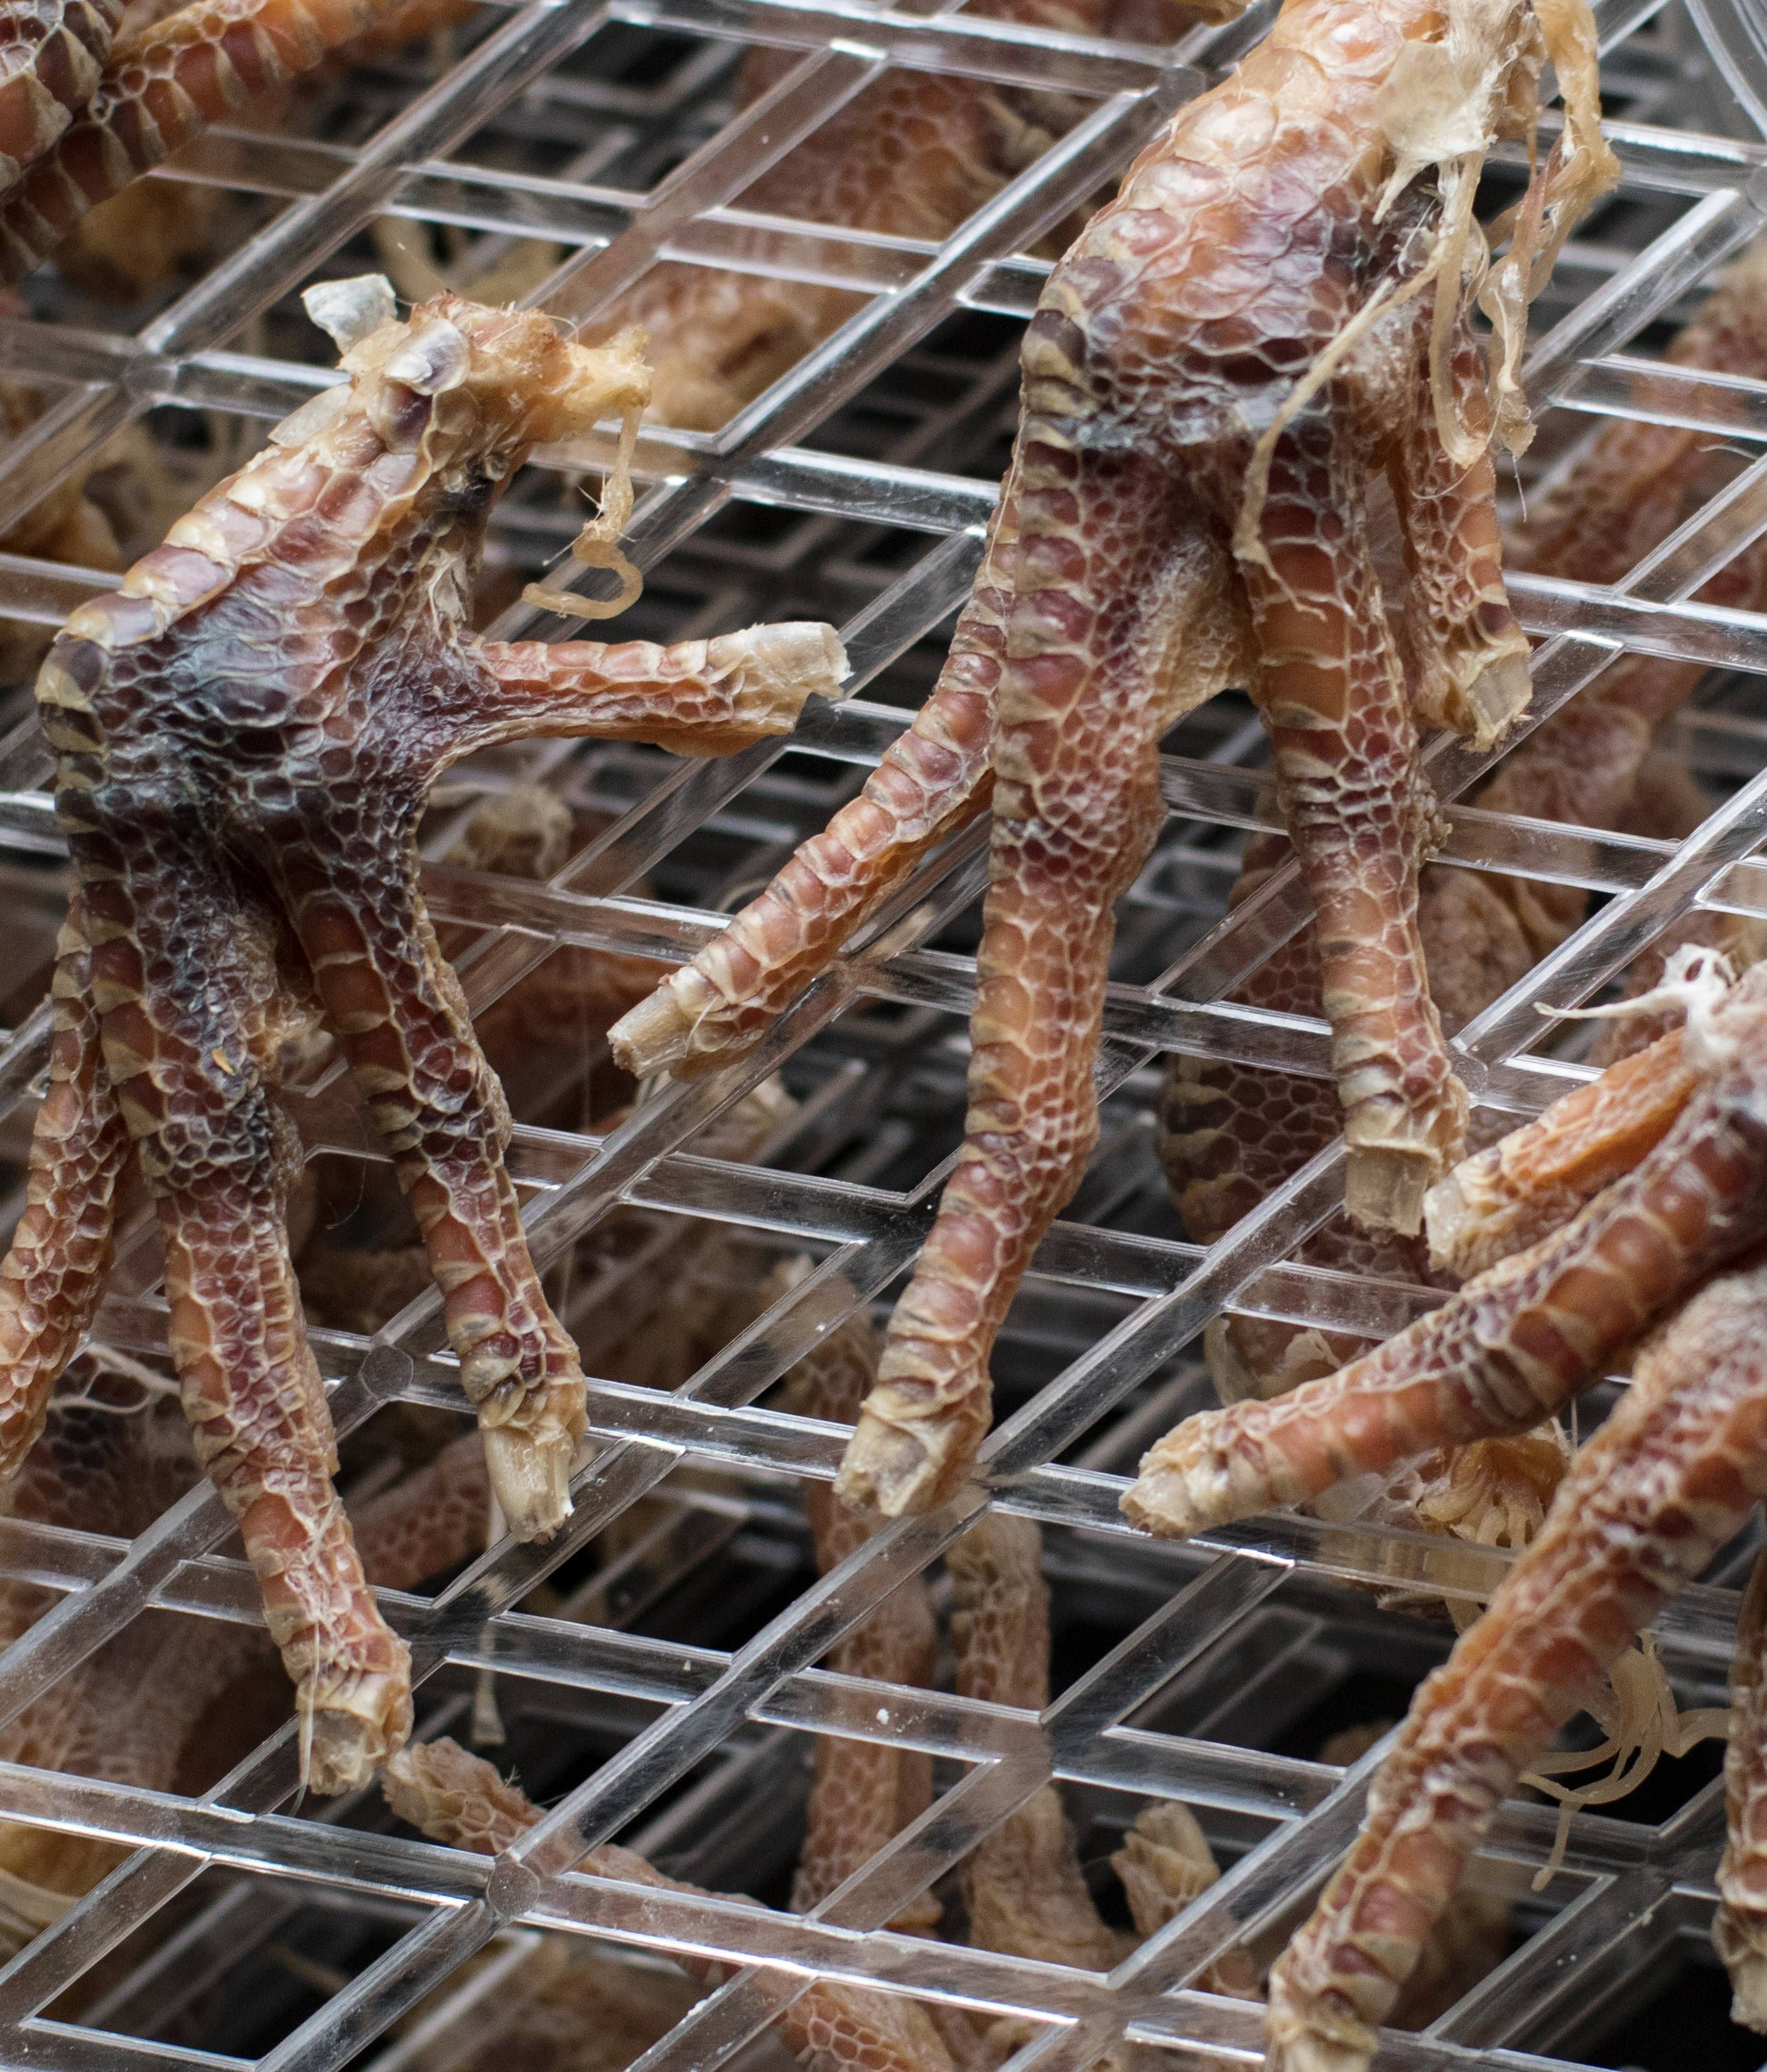 How To Make Dried (dehydrated) Chicken Feet For Dogs